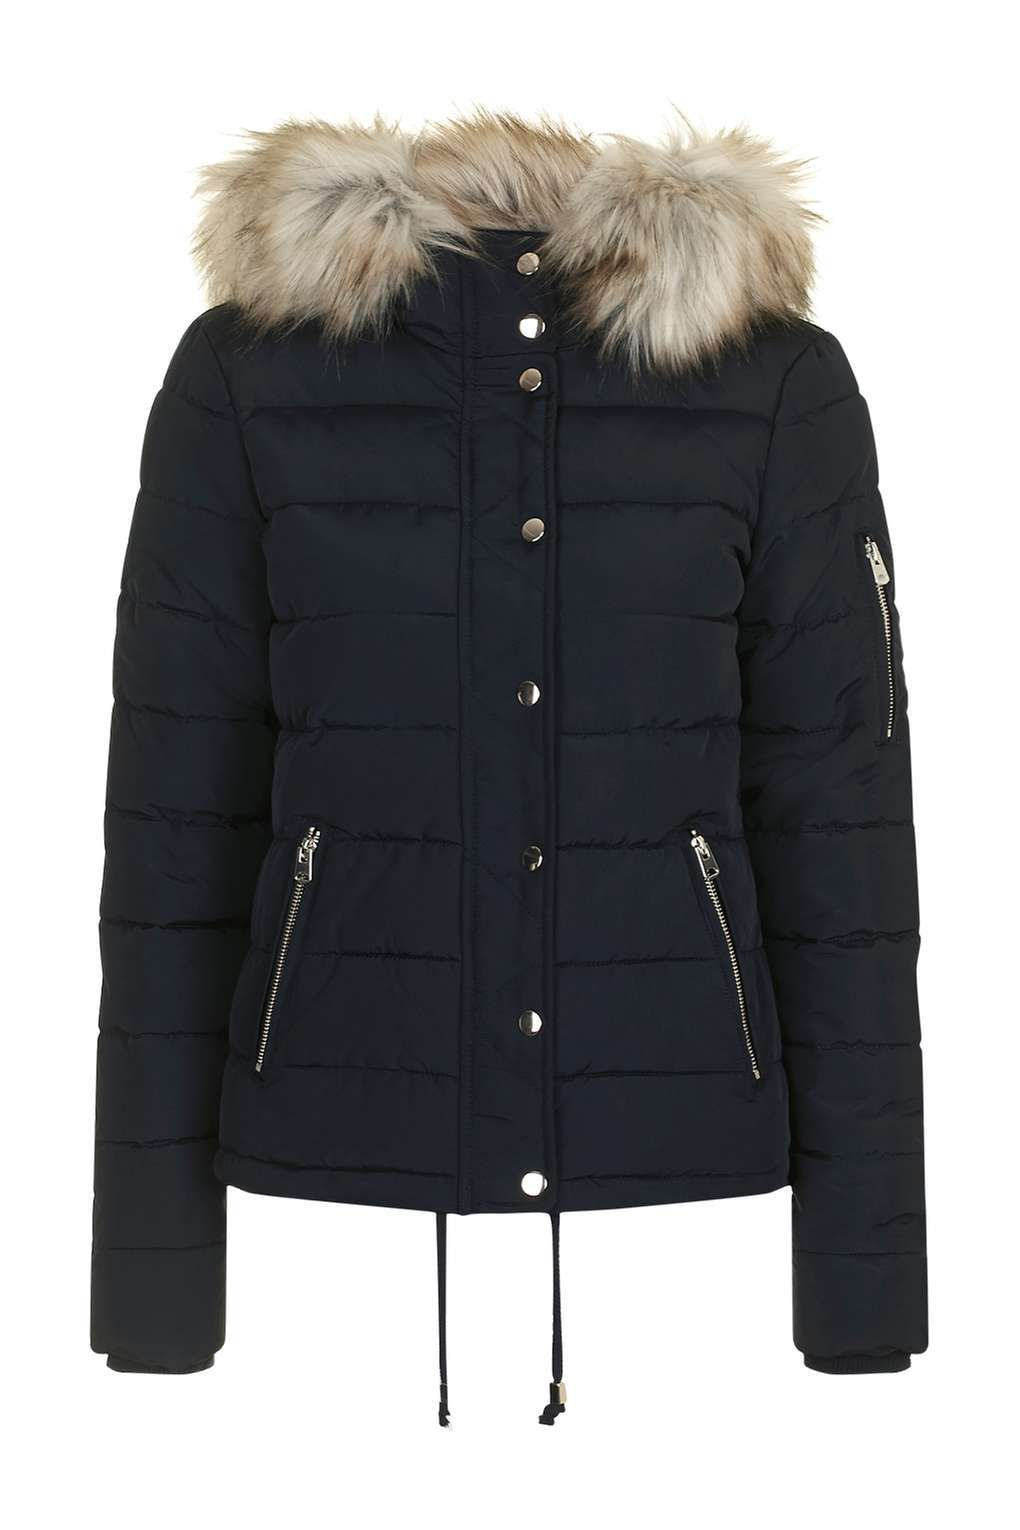 Topshop Puffer Jacket | FLY, STYLISH COATS & JACKETS | Pinterest ...